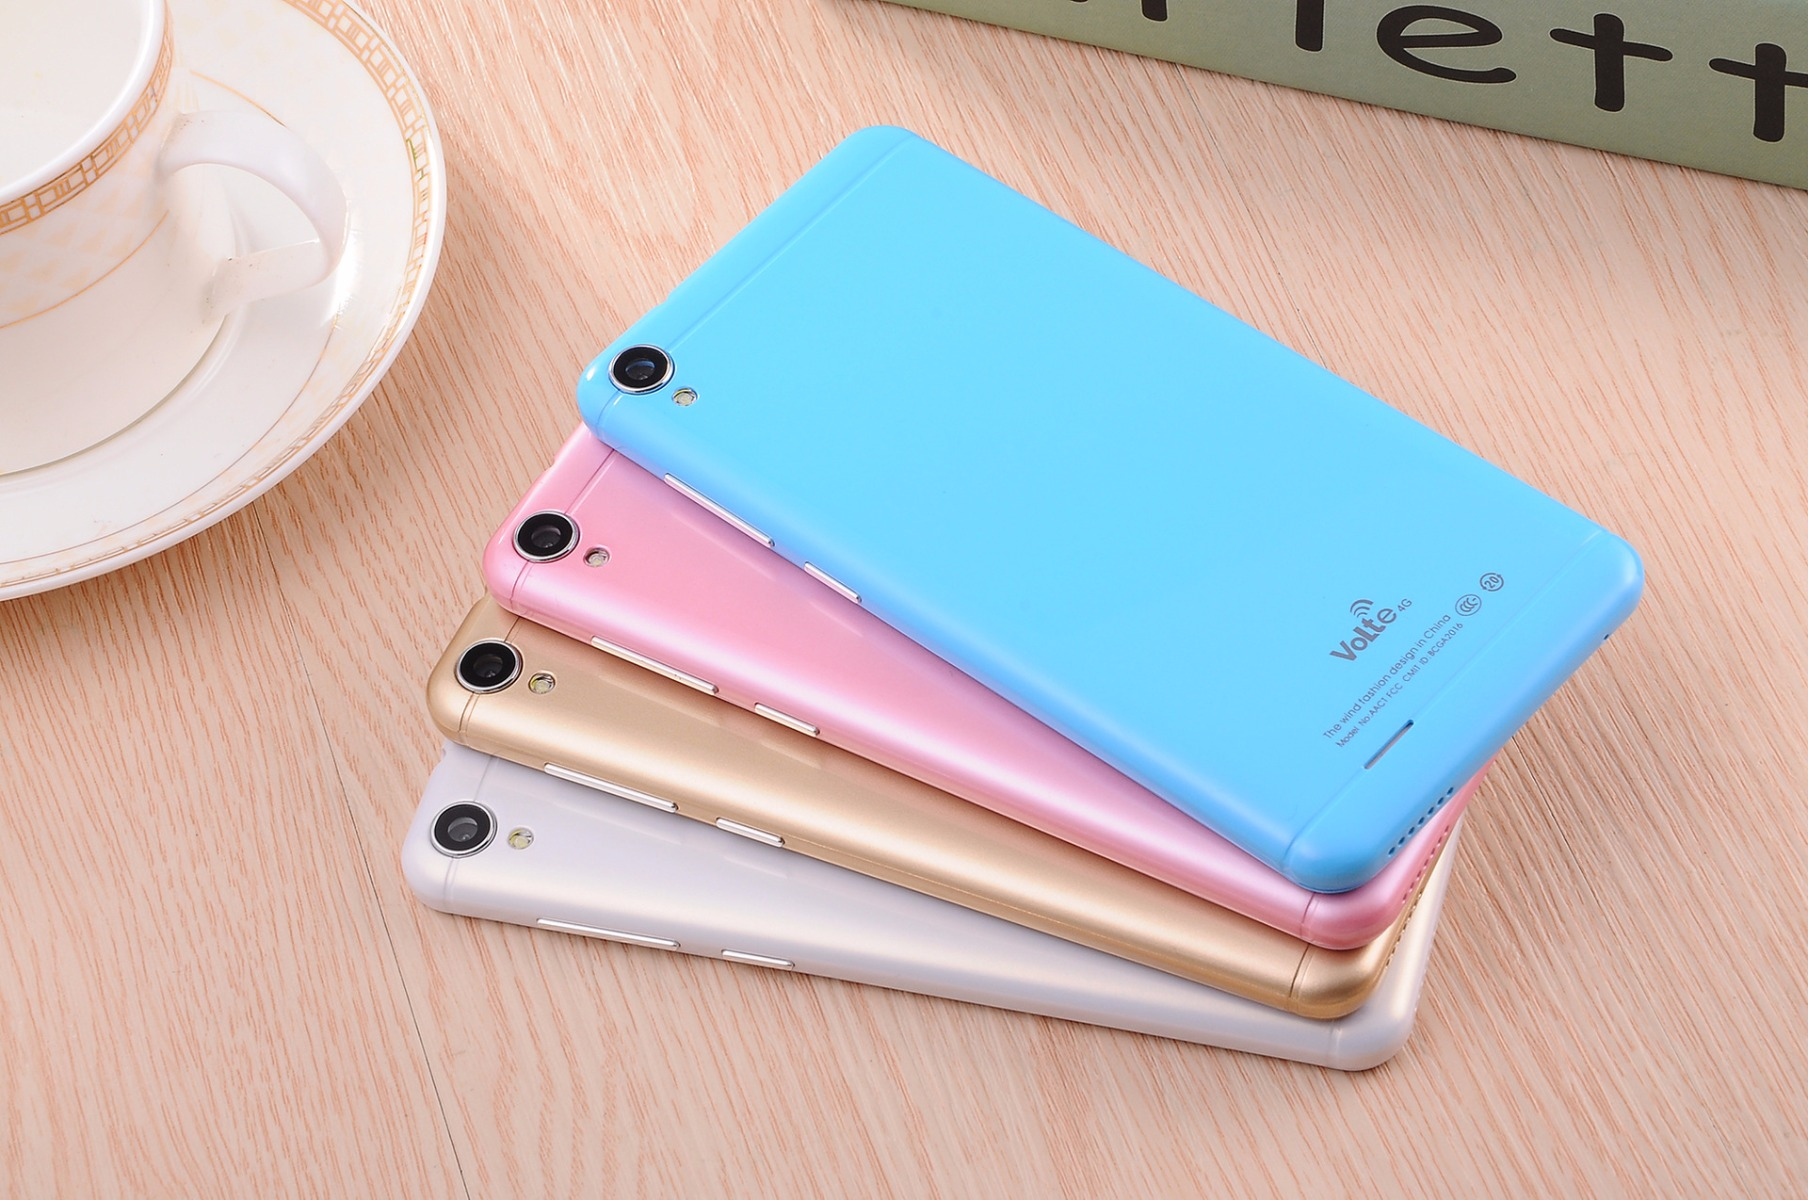 Heeyu LEZU R9U9 4.7 Inch 3G Smartphone Support Dual Card Multi-language